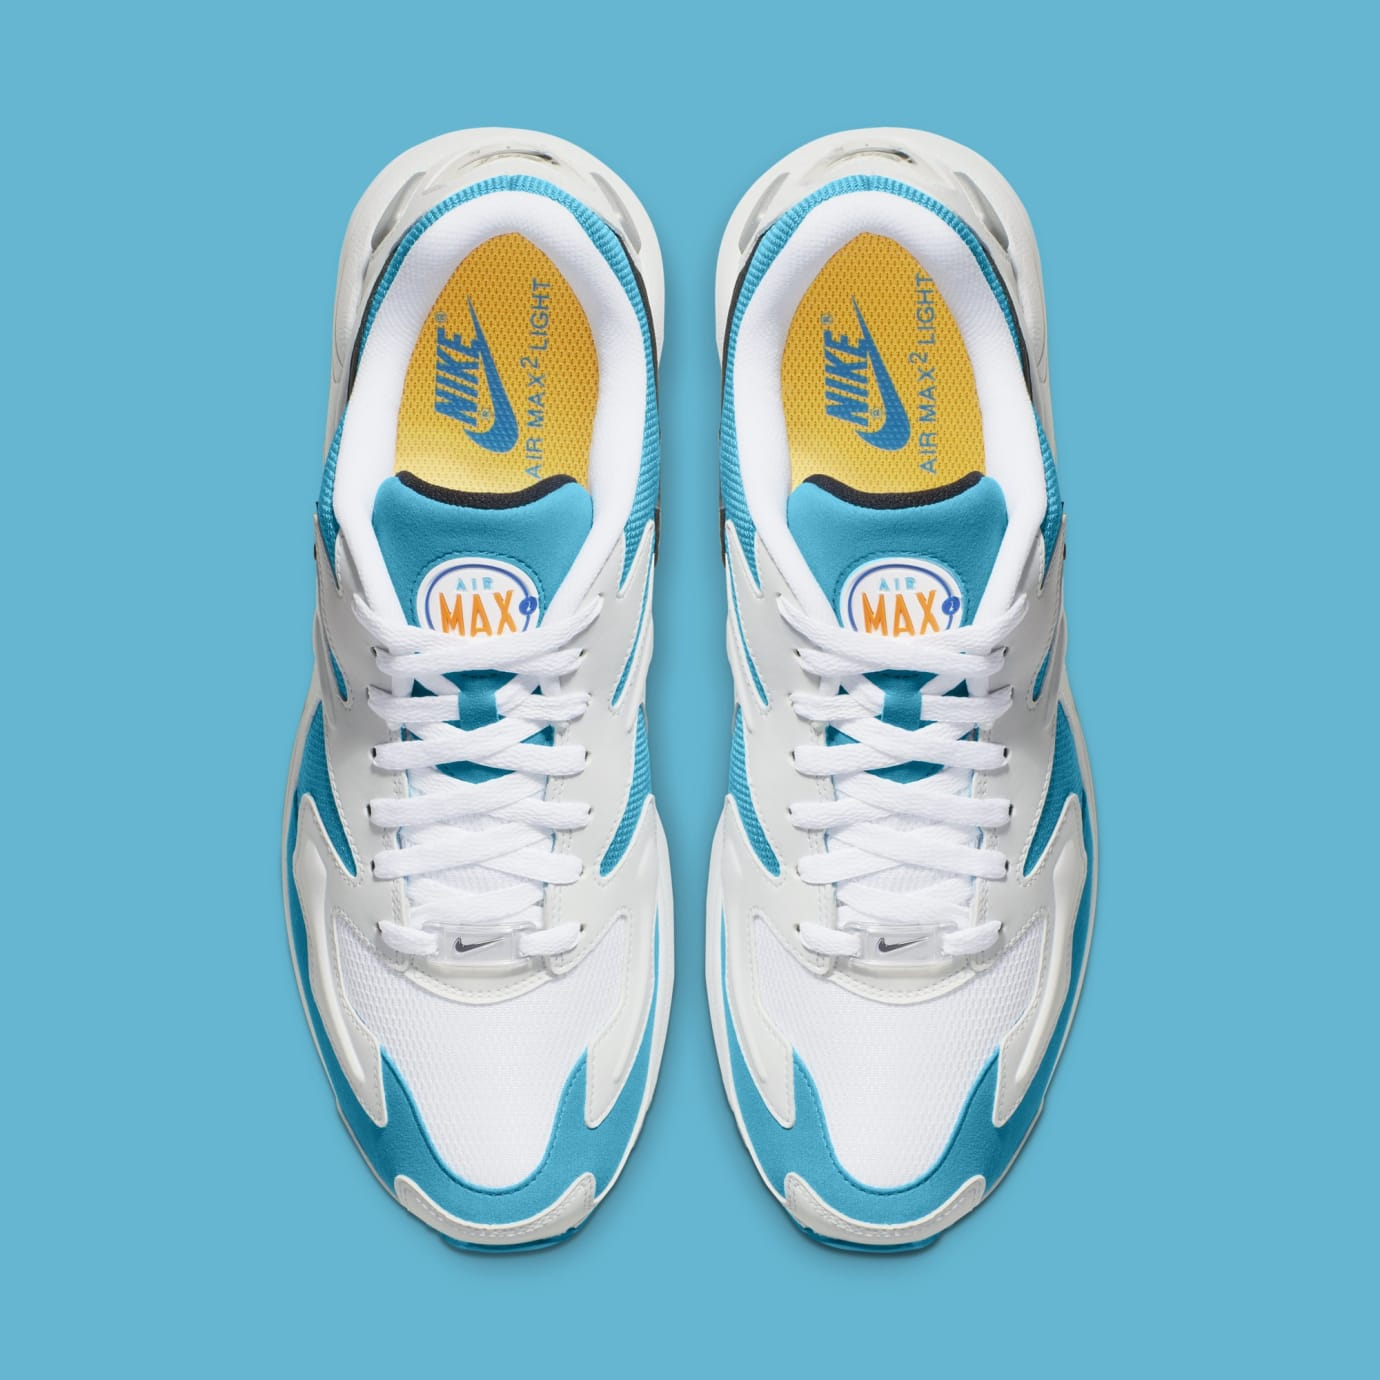 Nike Air Max2 Light 'White/Black/Blue Lagoon' AO1741-100 (Top)